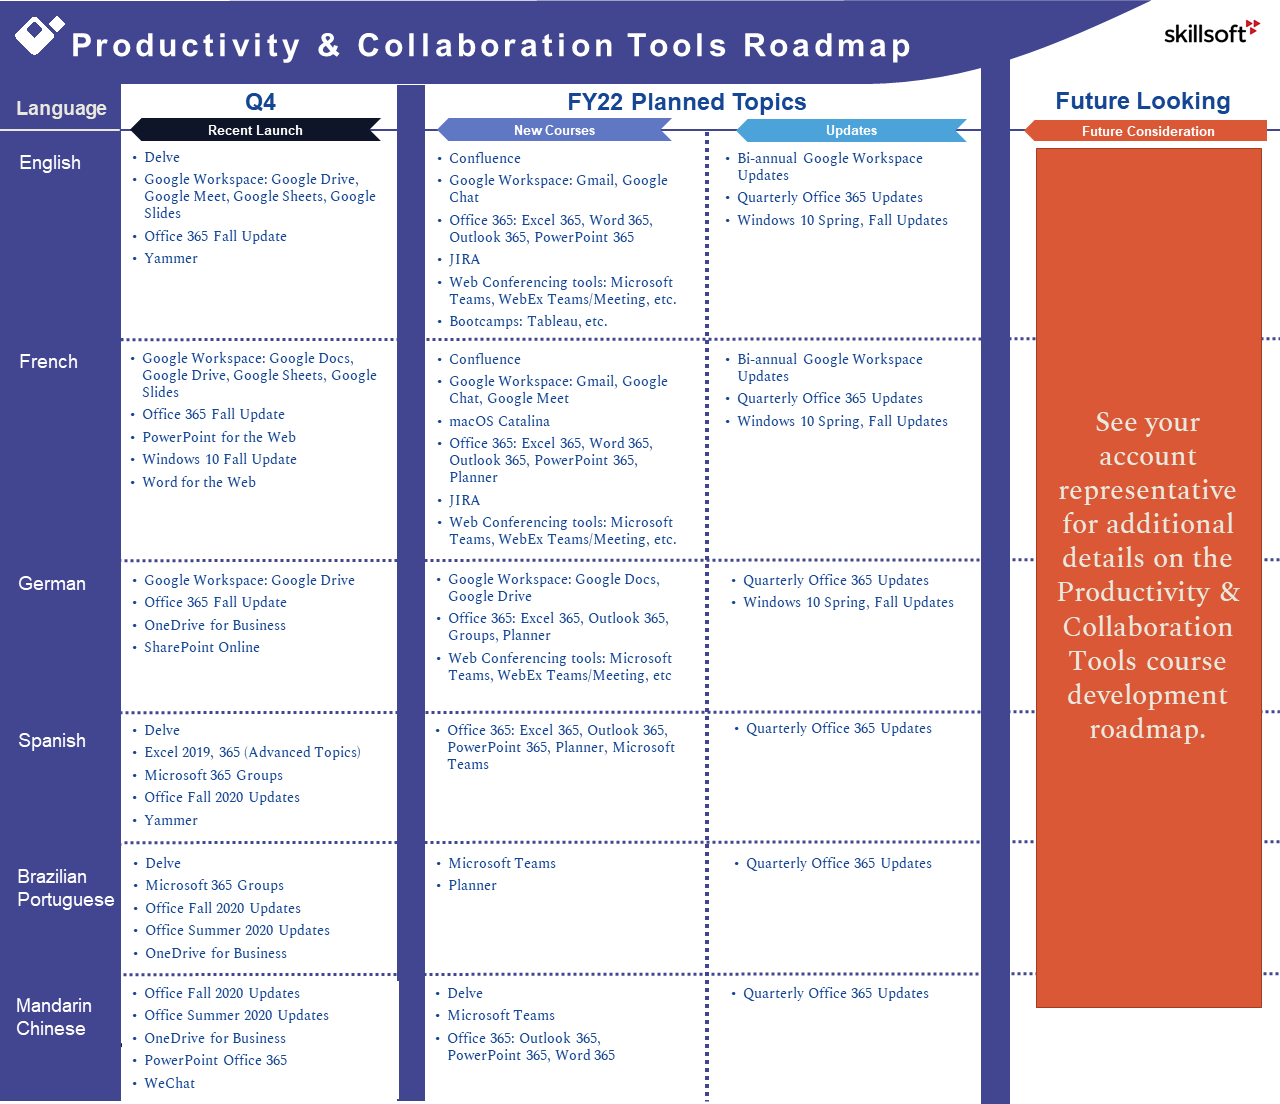 Productivity and Collaboration Tools FY22 Course Development Roadmap